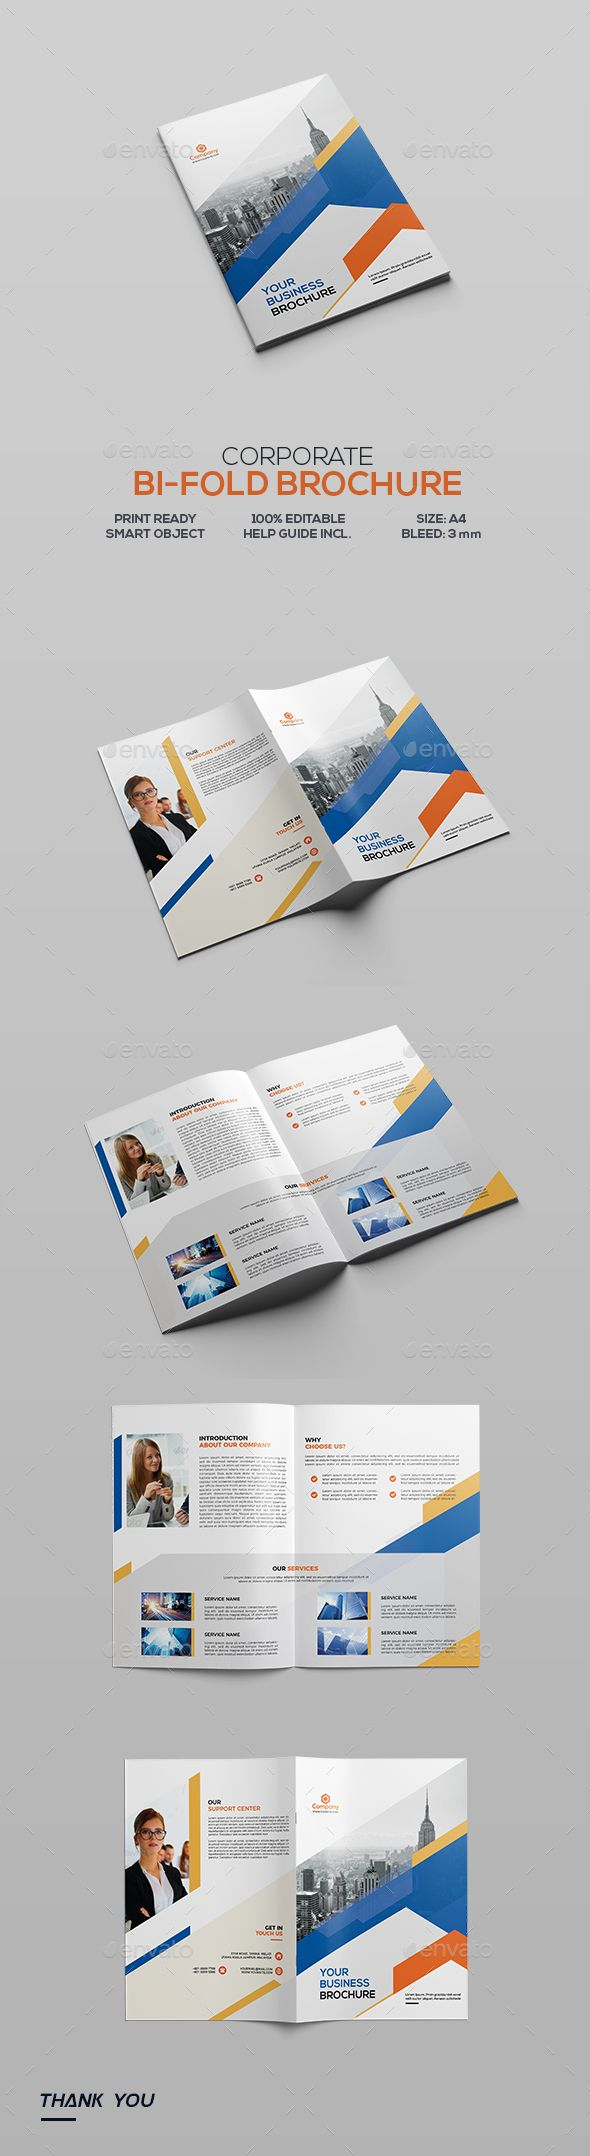 Corporate Bifold Brochure by GreenPixi Matching Flyer You May Like Other Corporate Bi-Fold Brochures! Below Corporate Bifold Brochure Promote Your Business with a mode